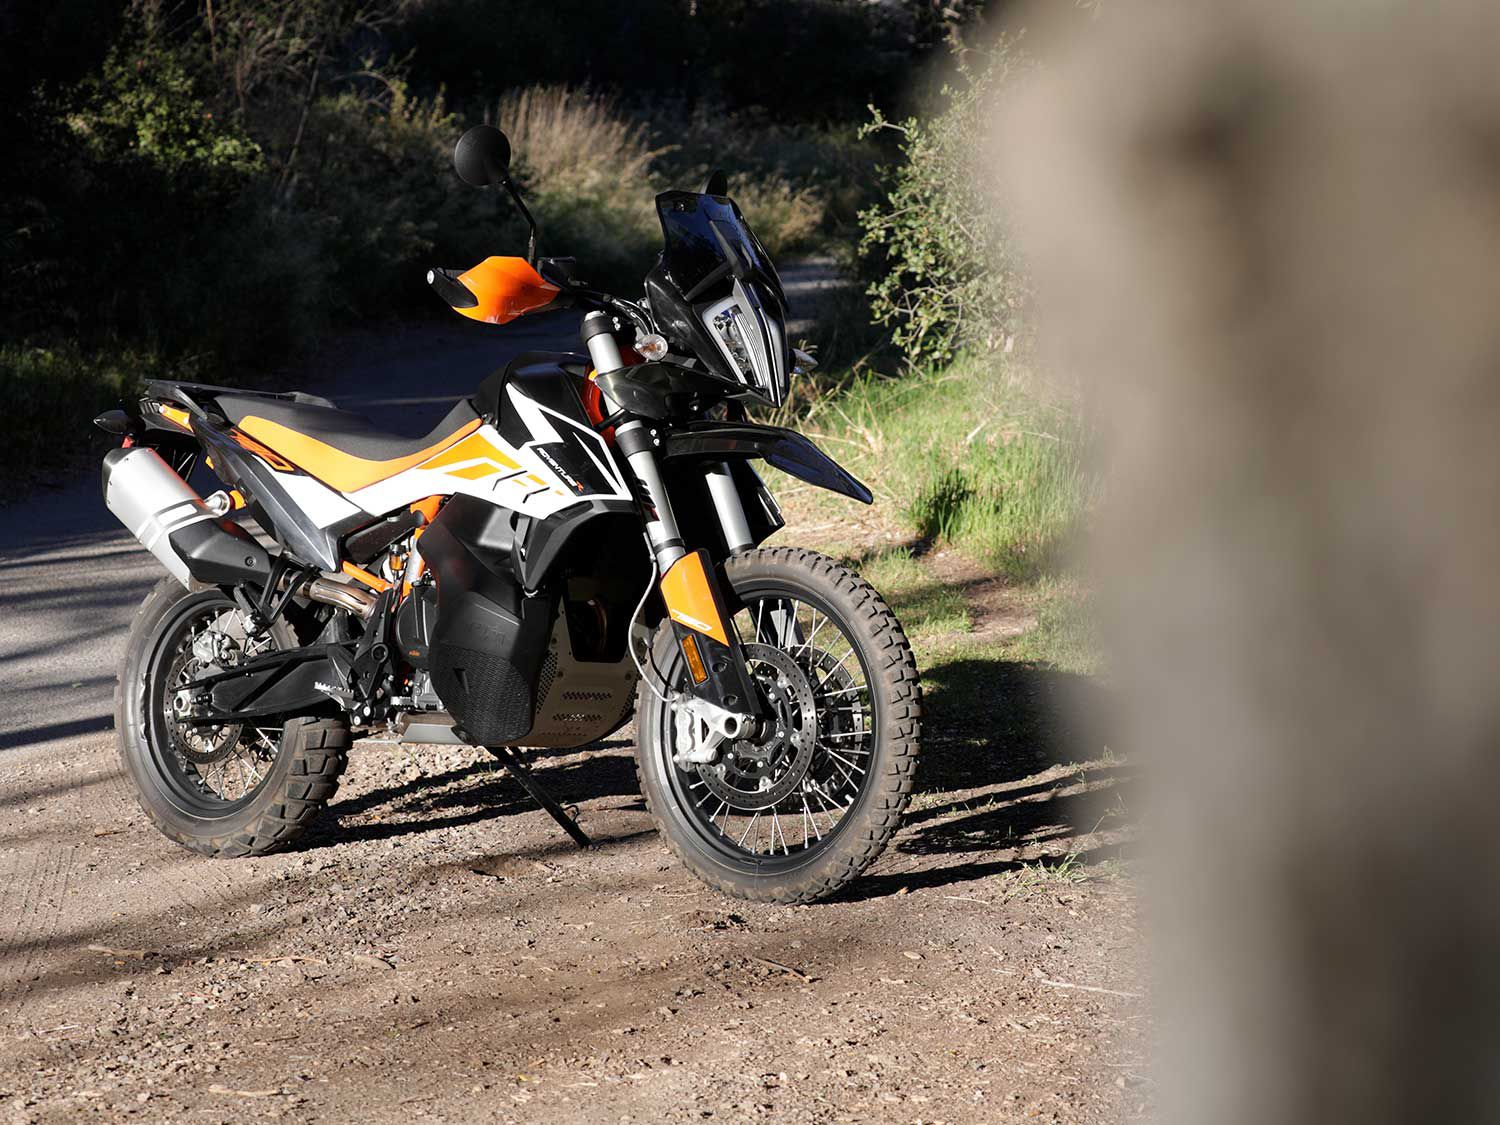 The 2020 KTM 790 Adventure R lives up to its moniker as we find out in this review.